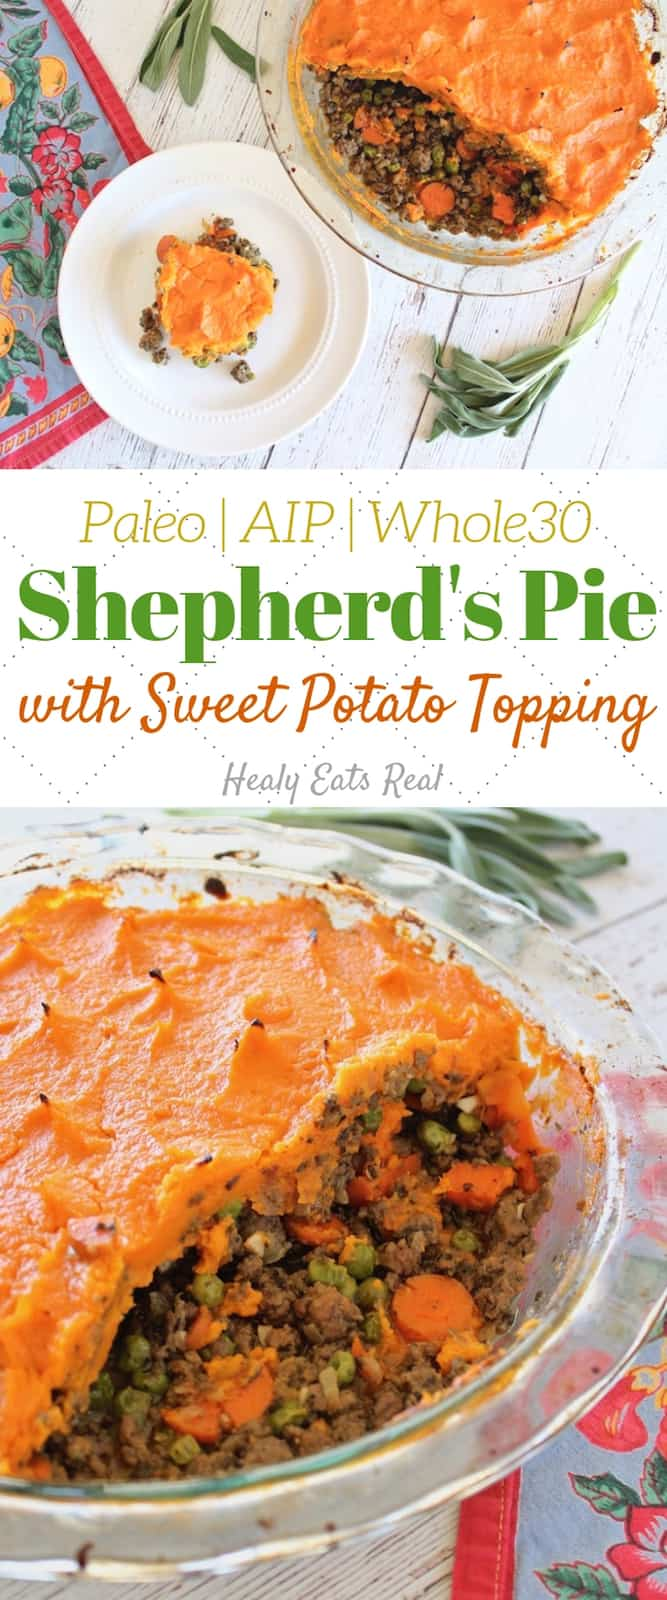 Shepherd\'s Pie Recipe with Sweet Potato (Paleo, AIP, Whole30)